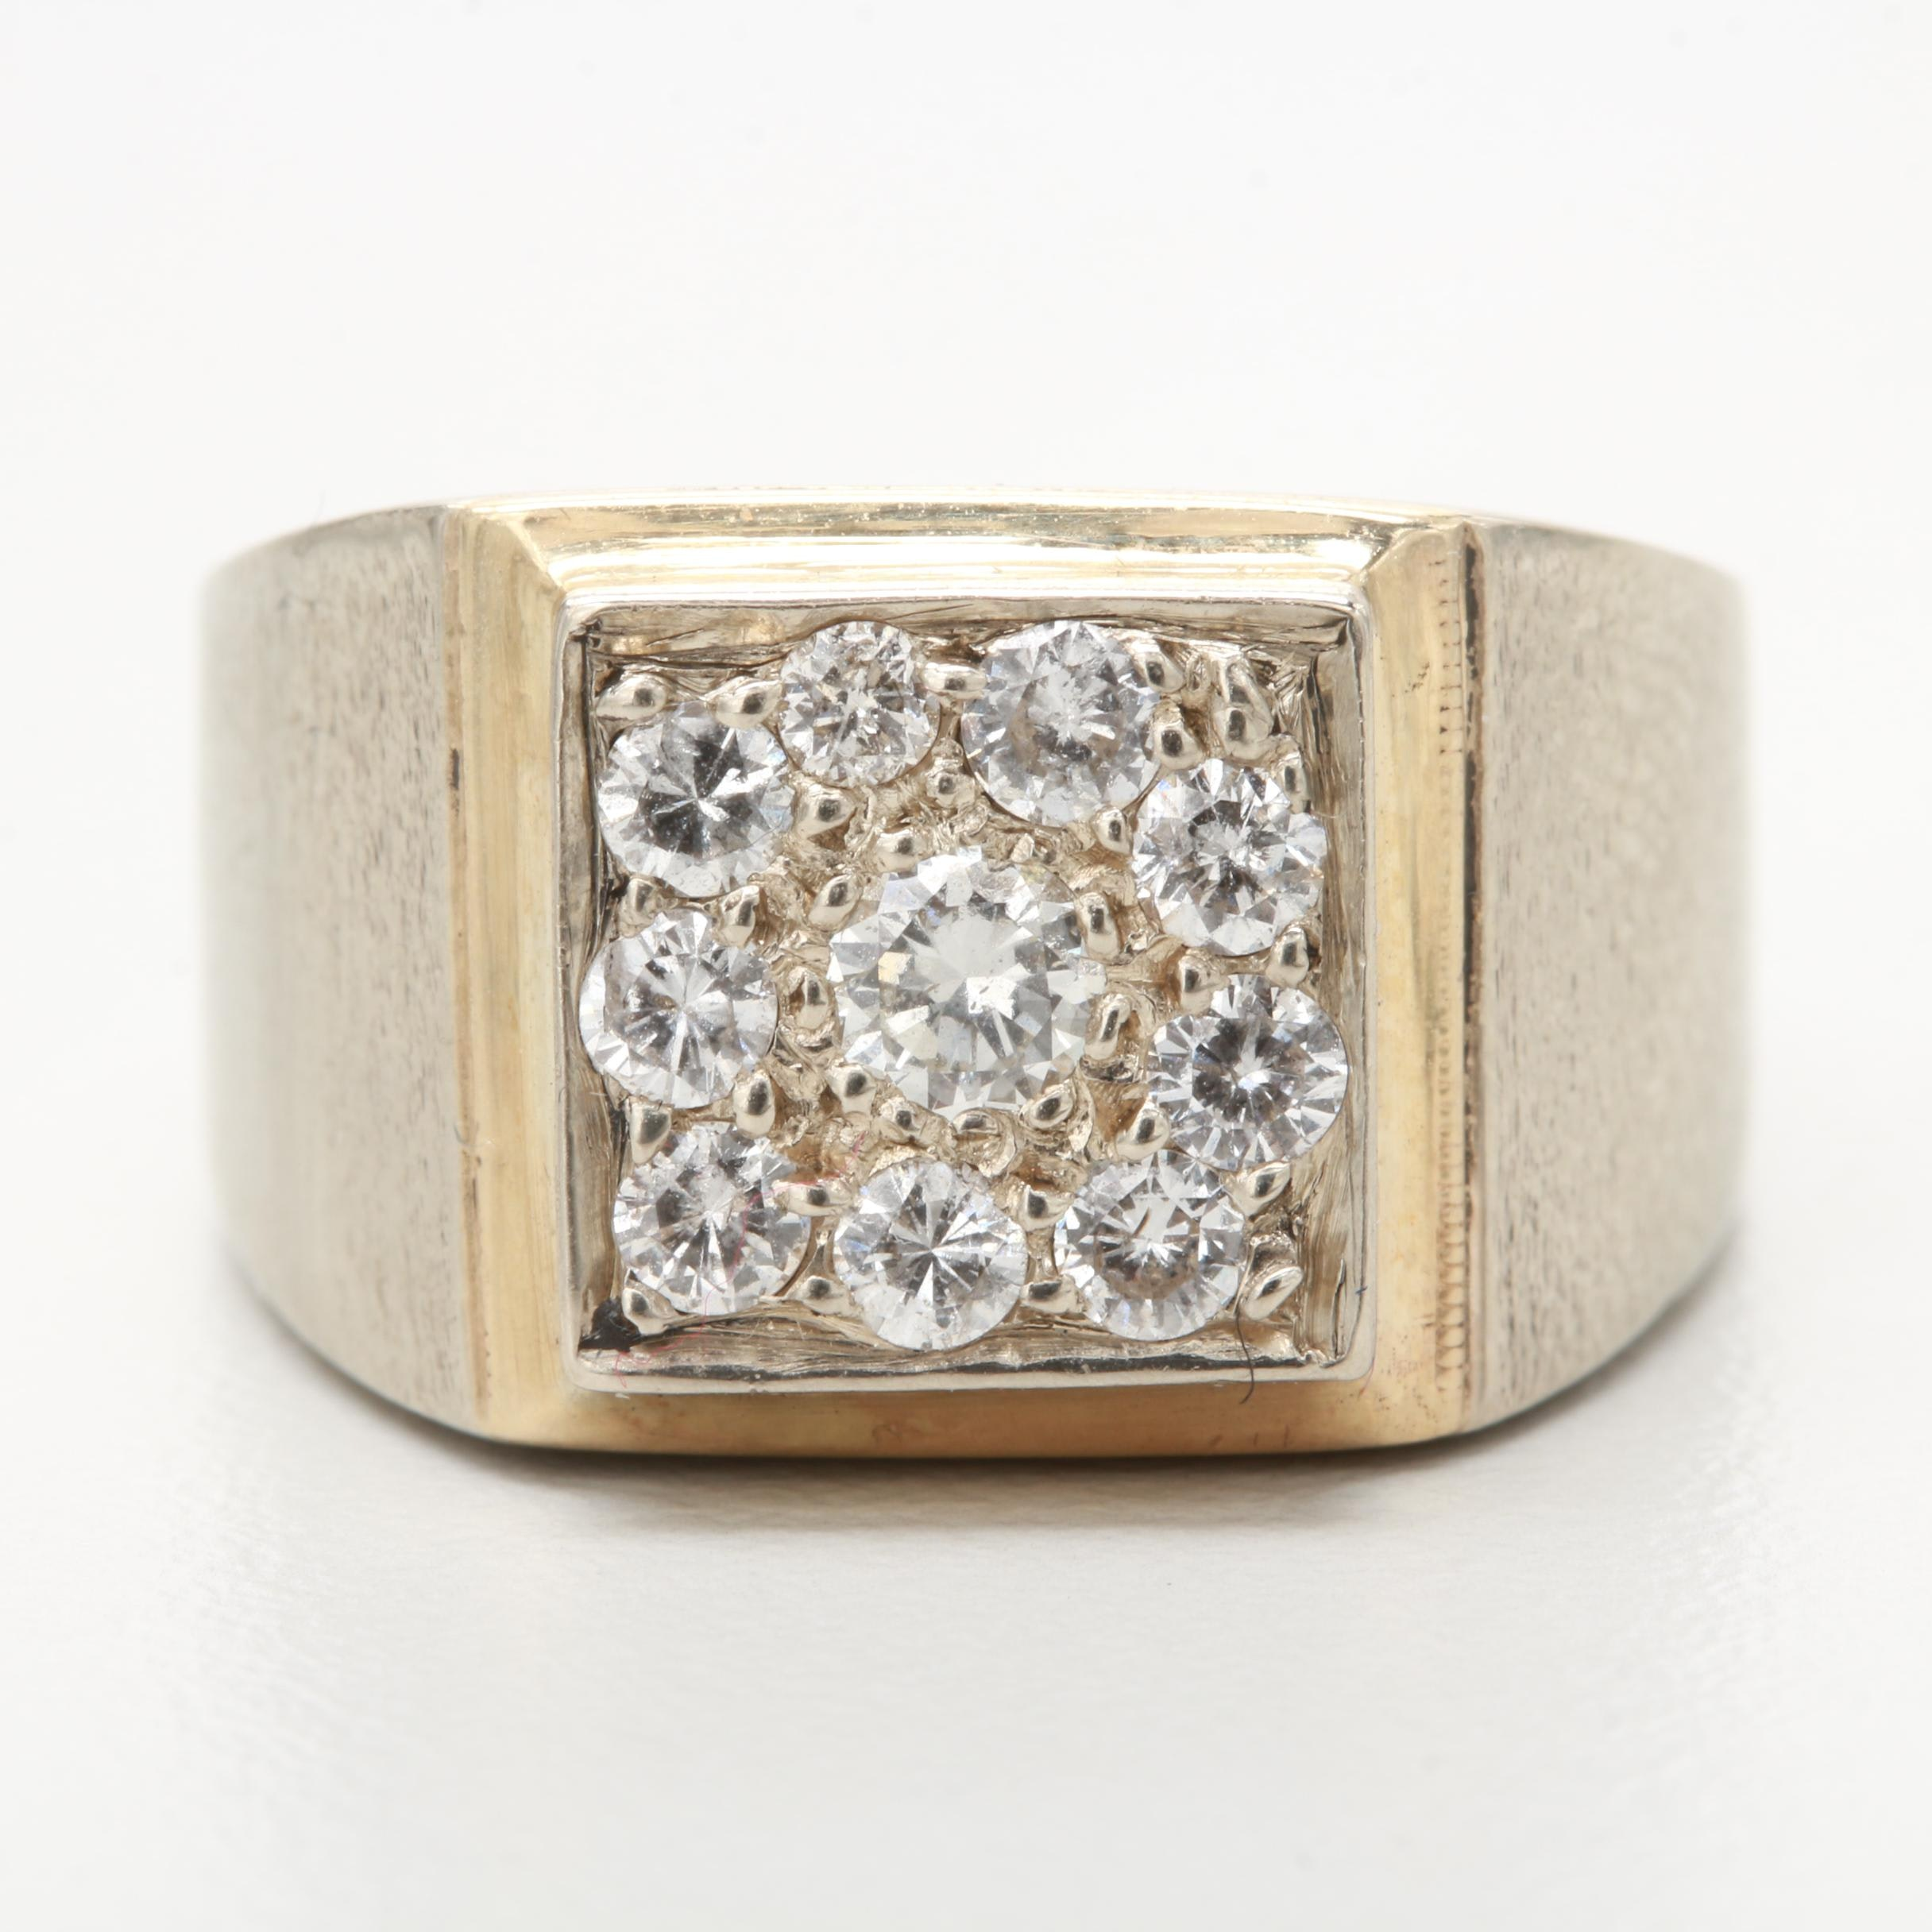 14K White Gold Diamond Ring with Yellow Gold Accent